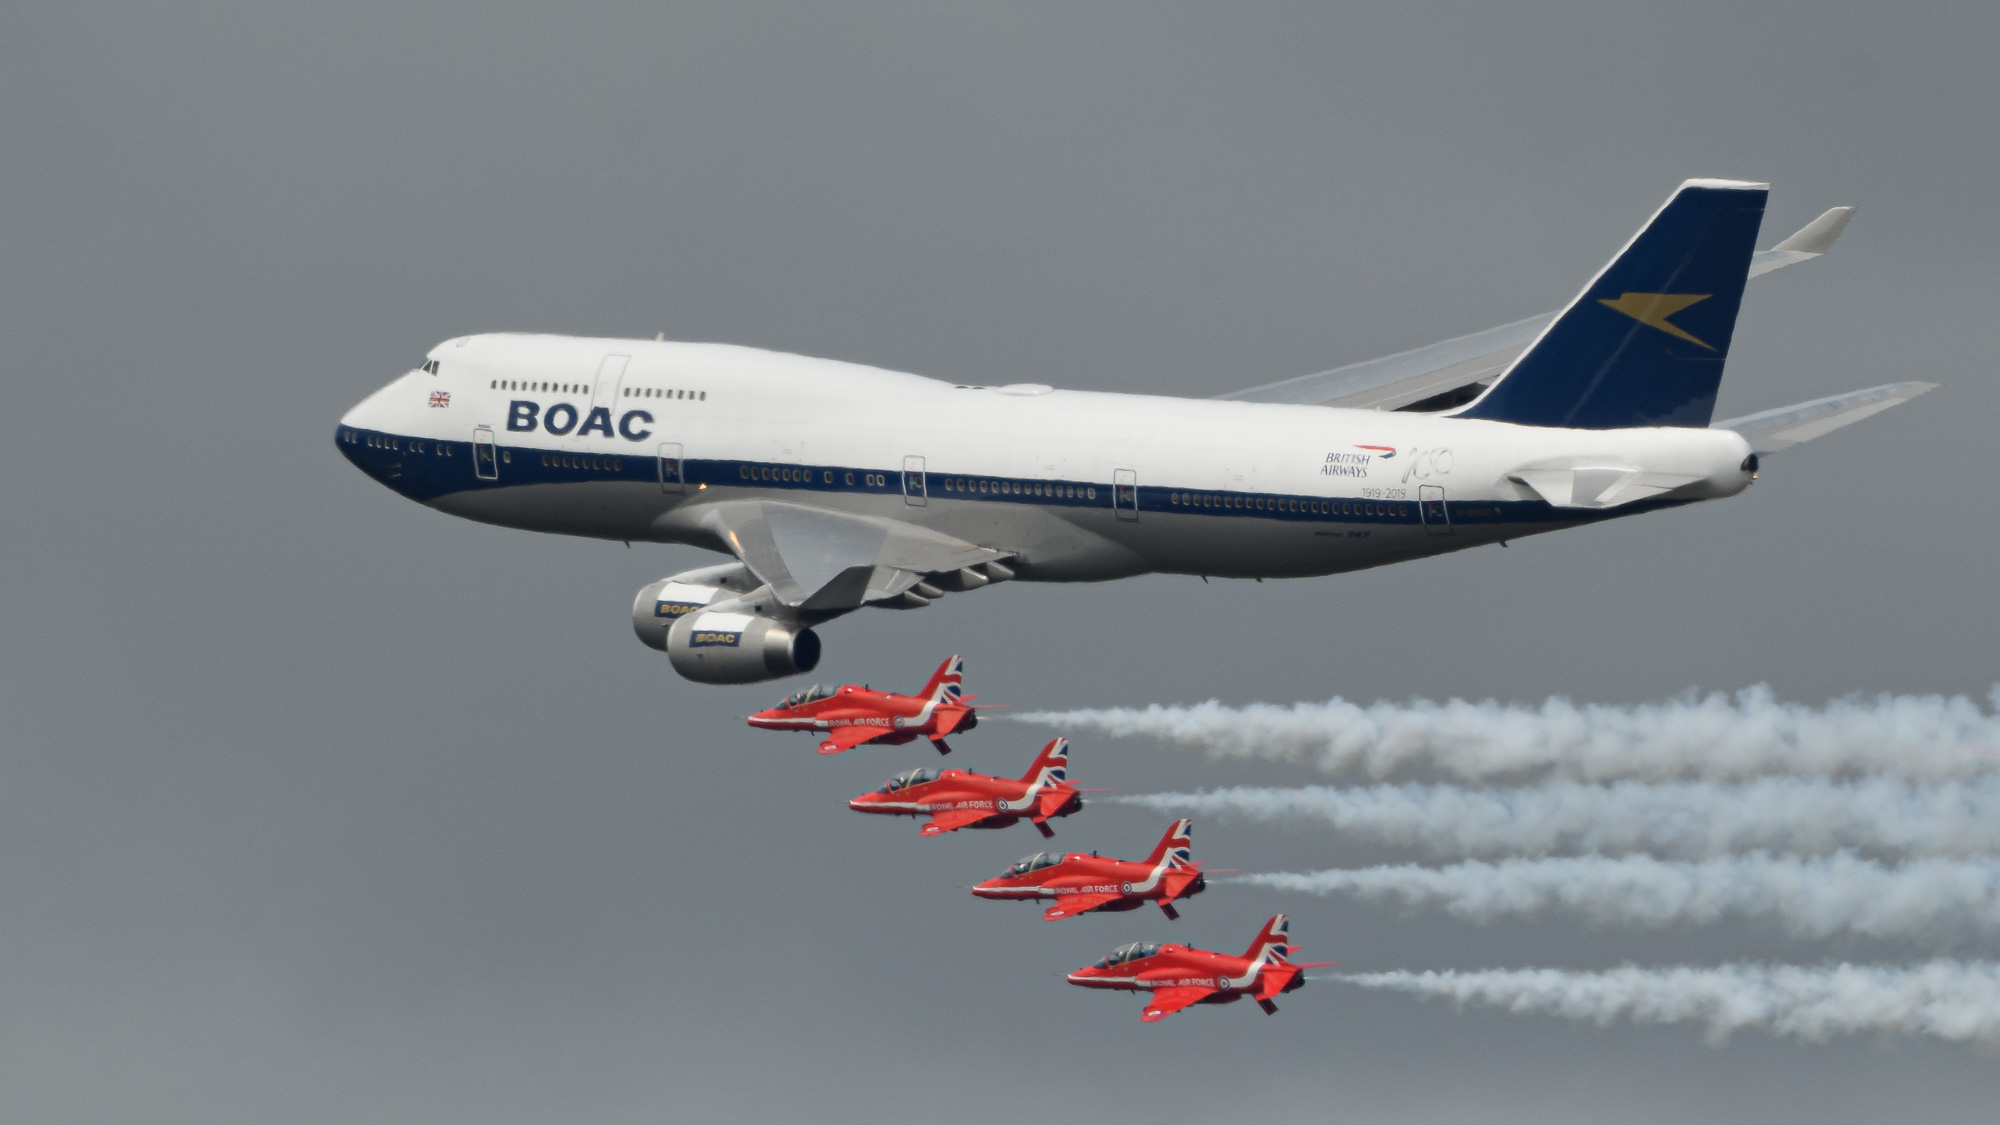 100 years ago,    an ancestor company of British Airways made its first commercial flight. To celebrate this,    BA has painted up four of its aircraft in past colour schemes   . This 747 carries the markings of BOAC, and did a fly past with the Red Arrows (on a day when the heat haze was almost impenetrable).